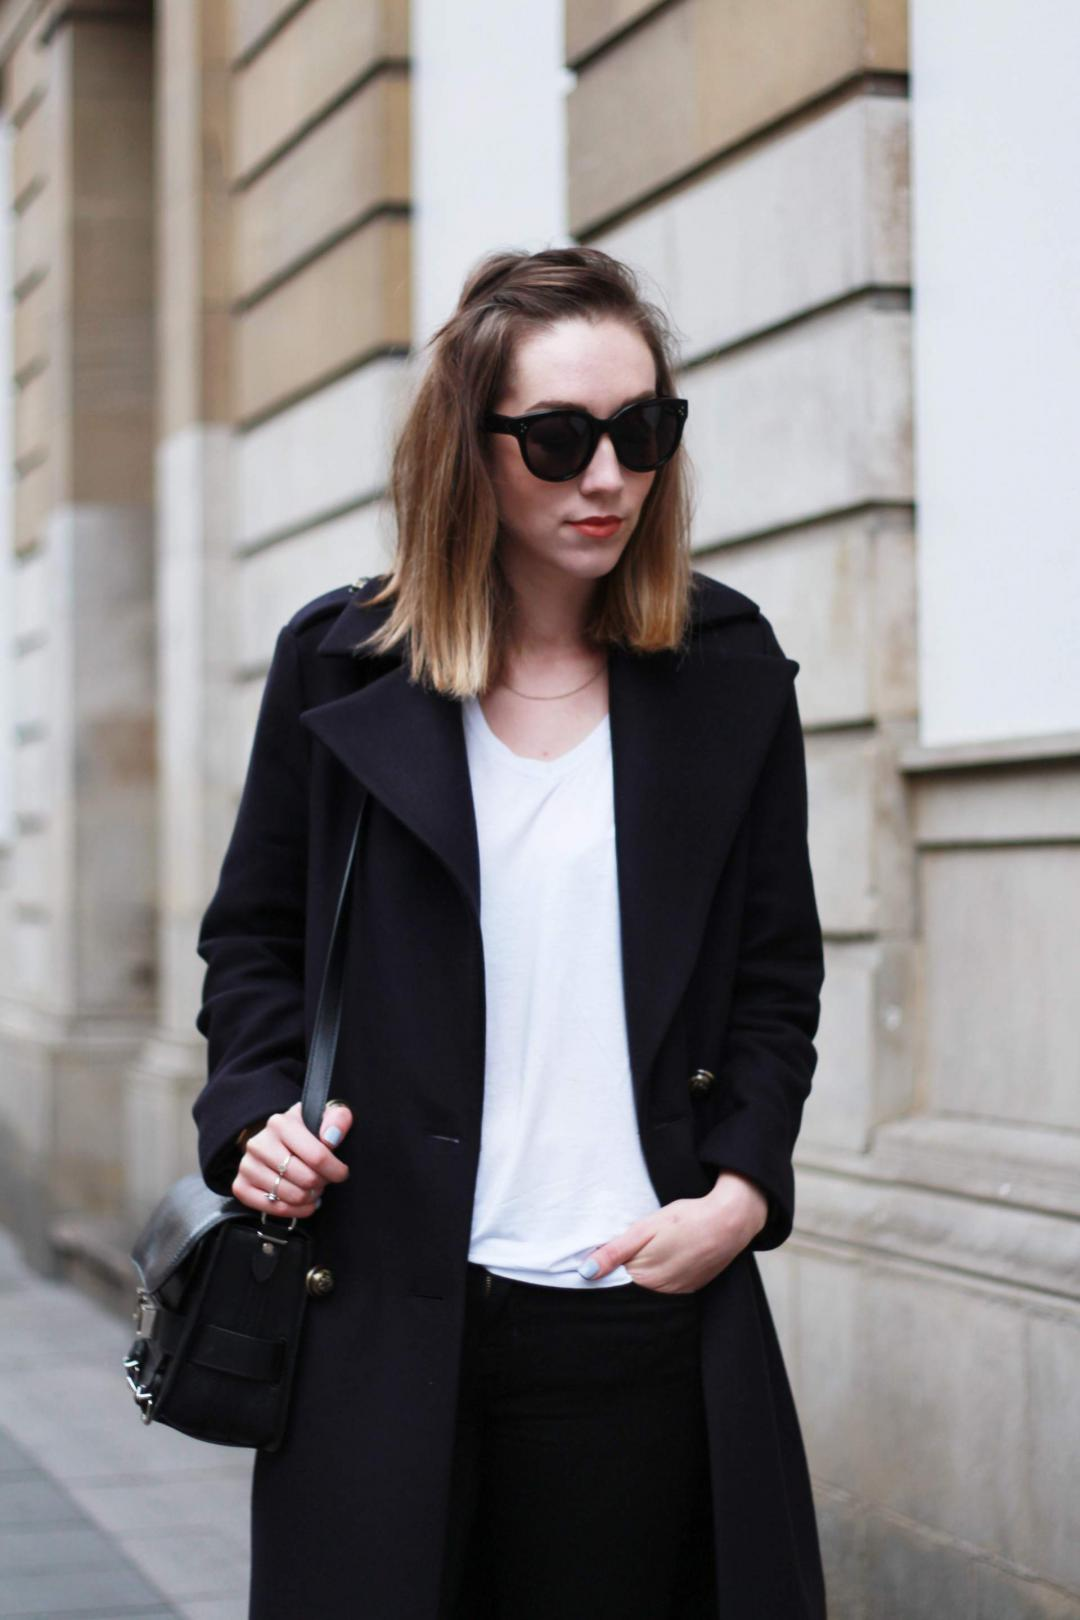 zara-navy-militry-coat-isabel-marant-dicker-boots-proenza-schouler-PS11-bag-black-3